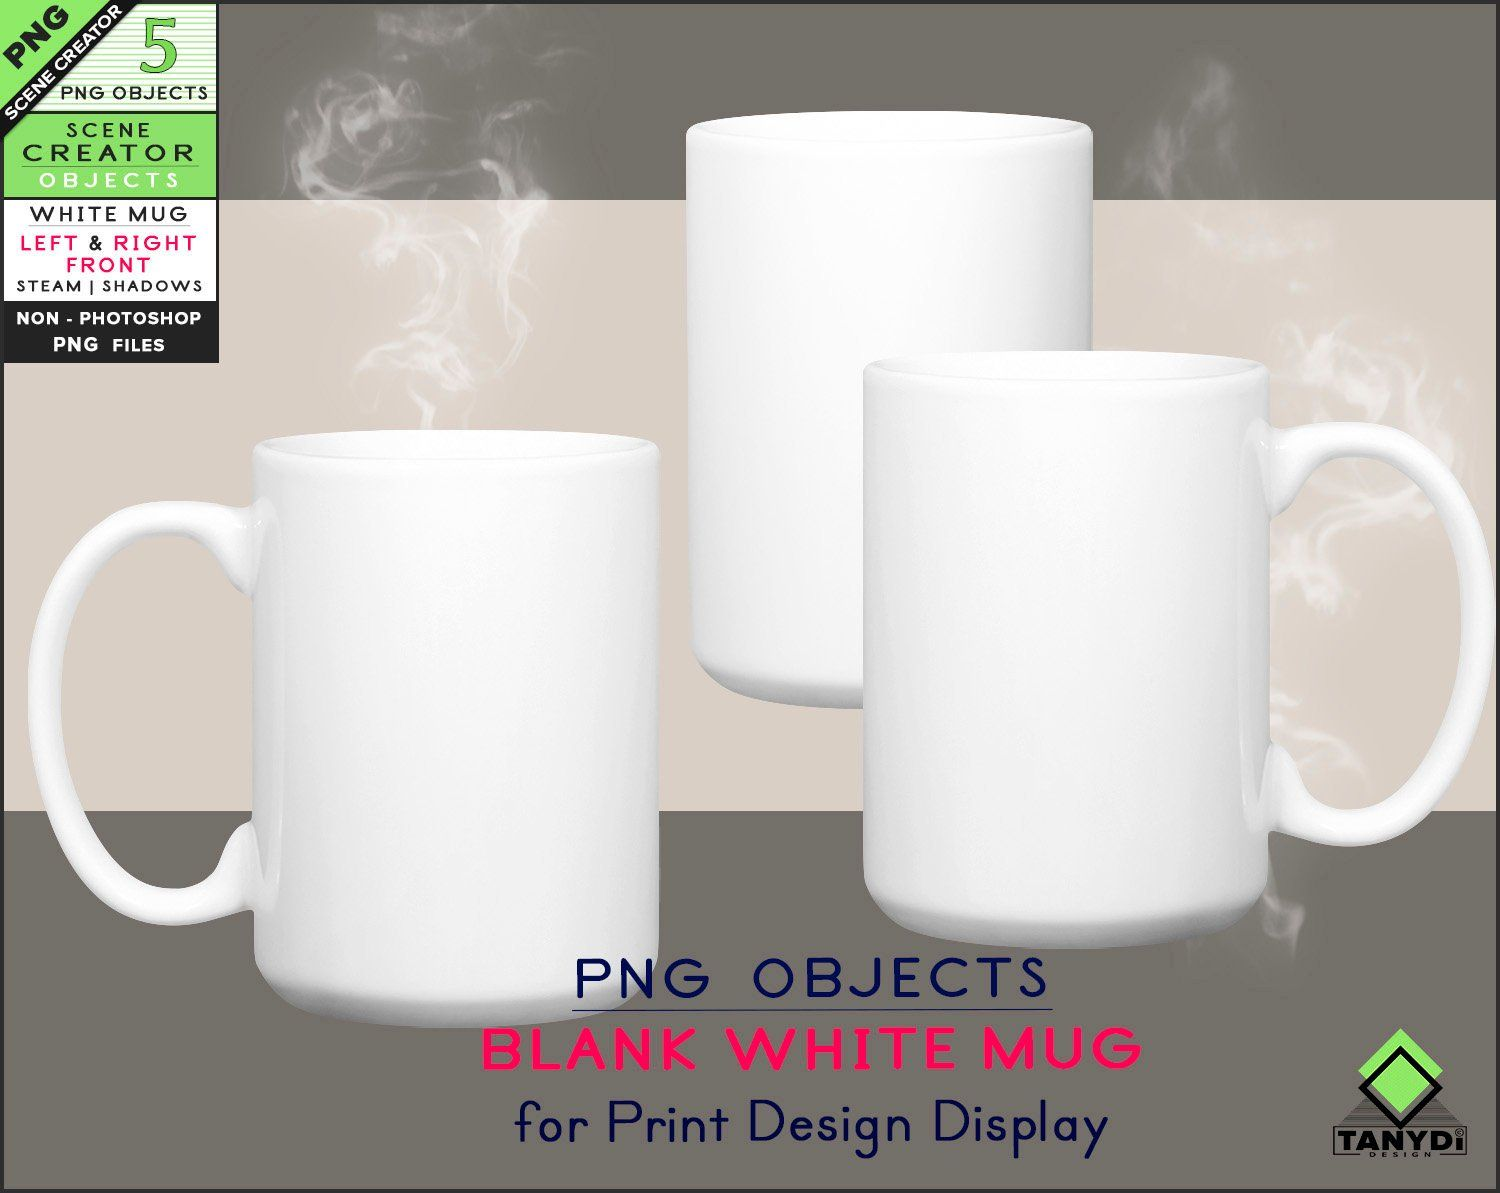 Blank Png Coffee Mug 3 Png White Mugs M10 Left Front Right Mug Png Steam Non Photoshop Scene Creator Drink Objects Do M10 Mugs Scene Creator Coffee Mugs